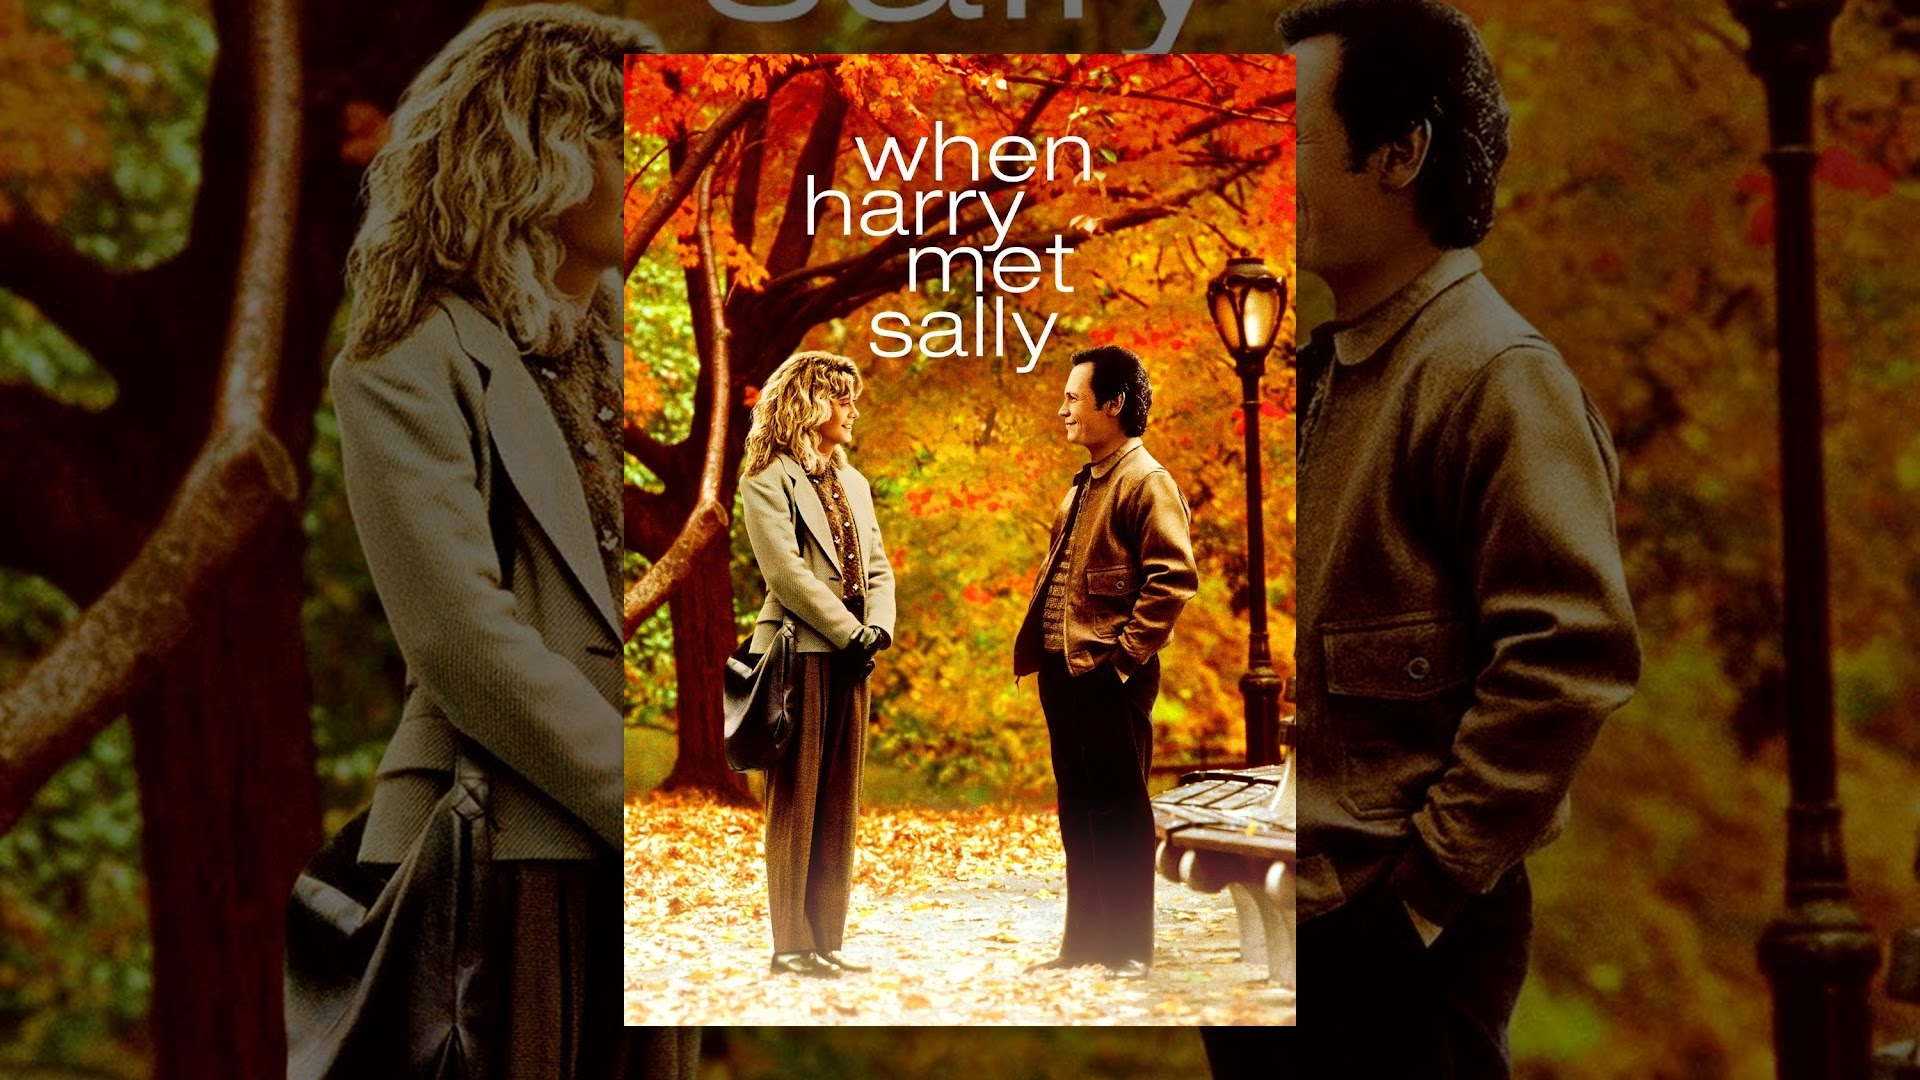 essay about when harry met sally A new video essay from the lessons from a screenplay youtube channel breaks down how when harry met sally succeeds where many romantic comedies fail, proving why the film is one of the most highly.